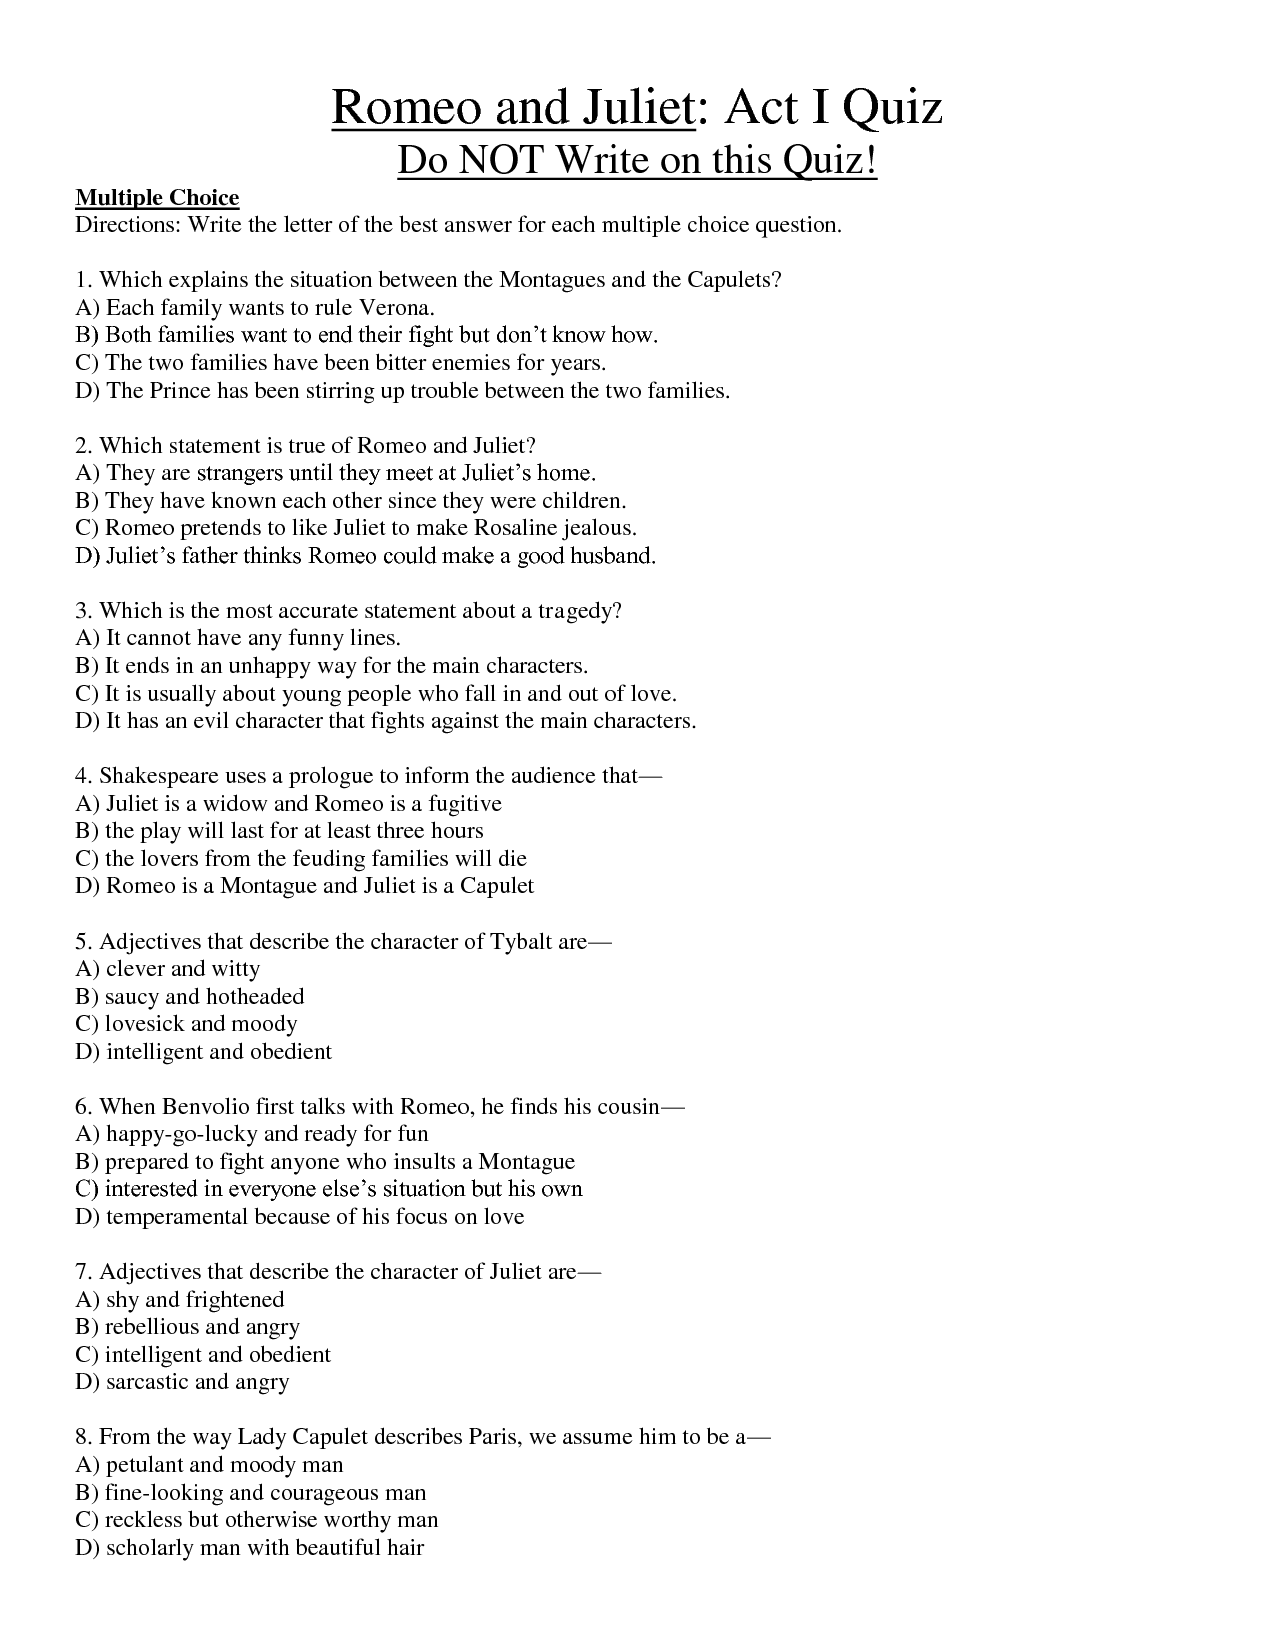 romeo juliet shakespeare character test review game bingo romeo and juliet act 1 quiz